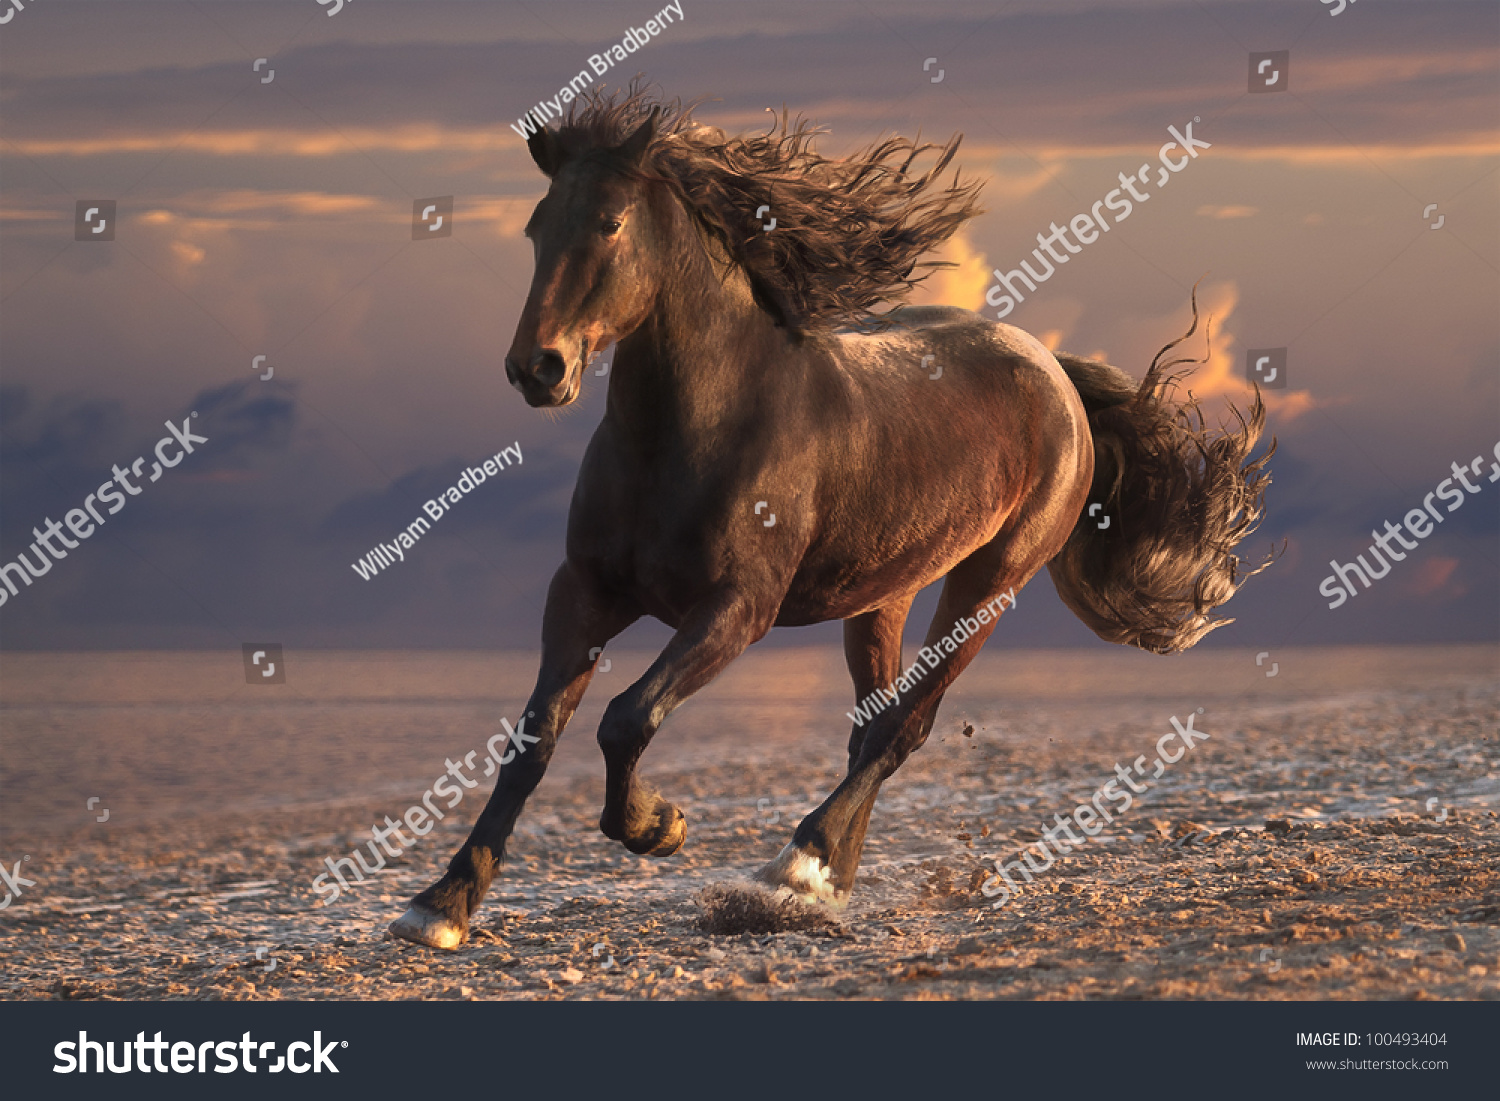 Running Horse Streamed Mane On Sunset Stock Photo ...